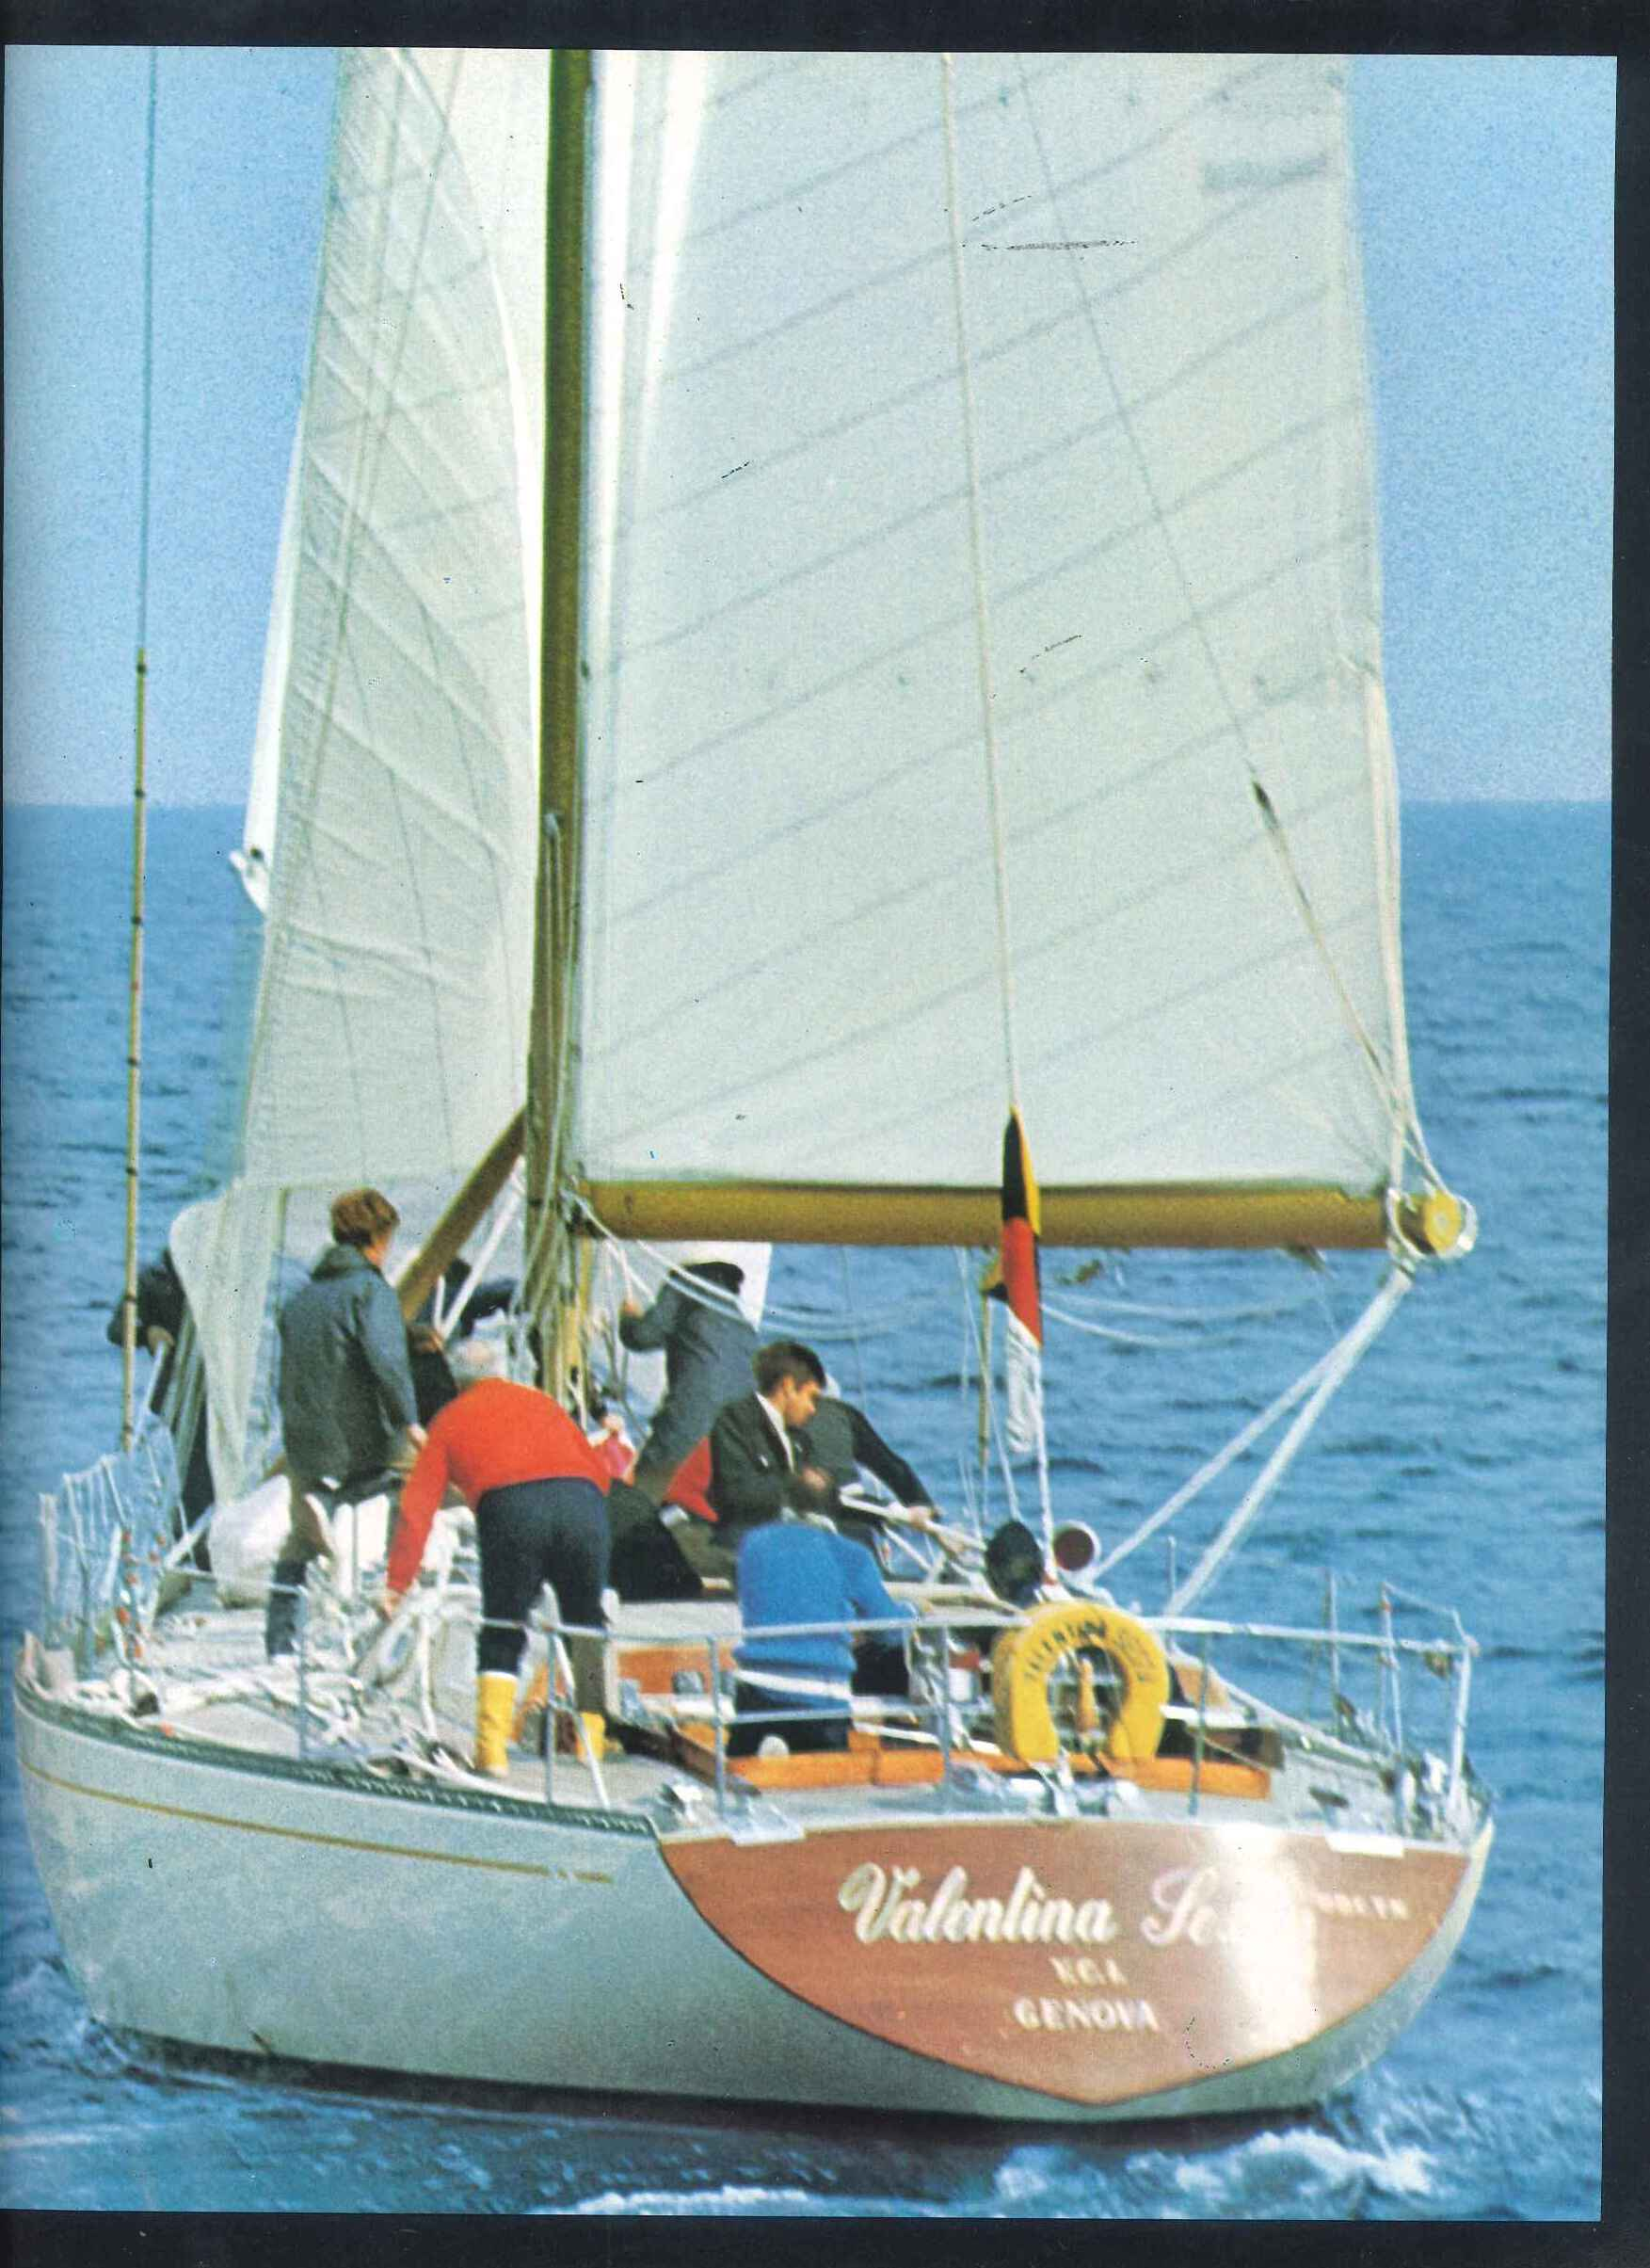 1973 06 PRESS SANGERMANI VALENTINA SESTA UOMO MARE 2 (1).jpg